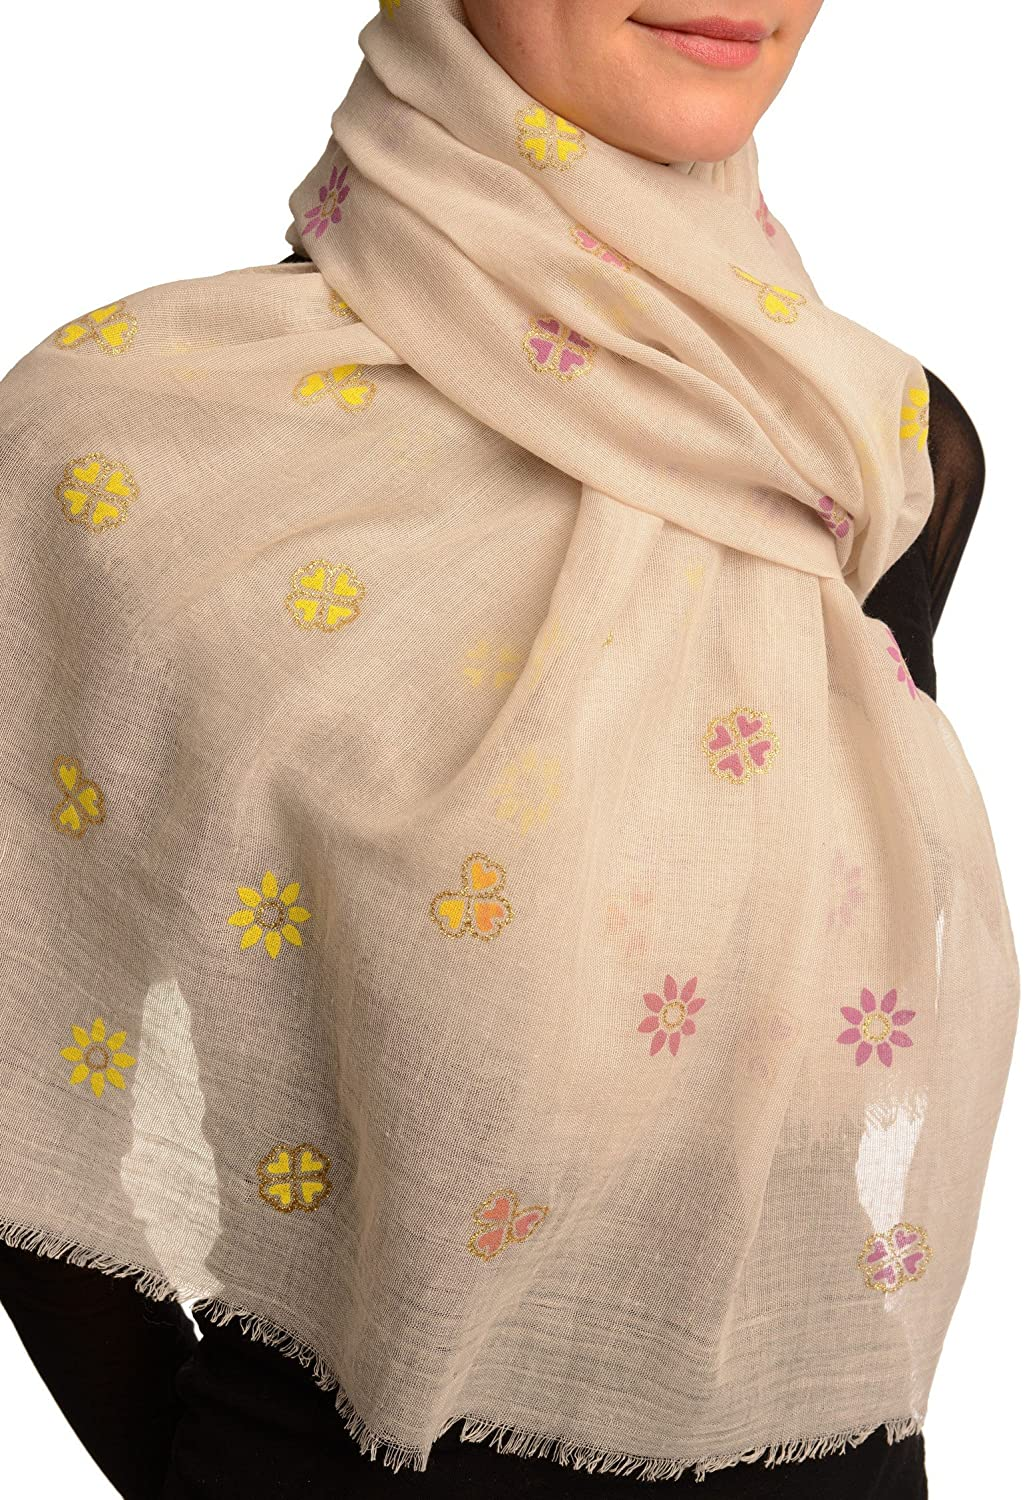 Printed Clover With Gold Lurex On Beige Unisex Scarf - Scarf